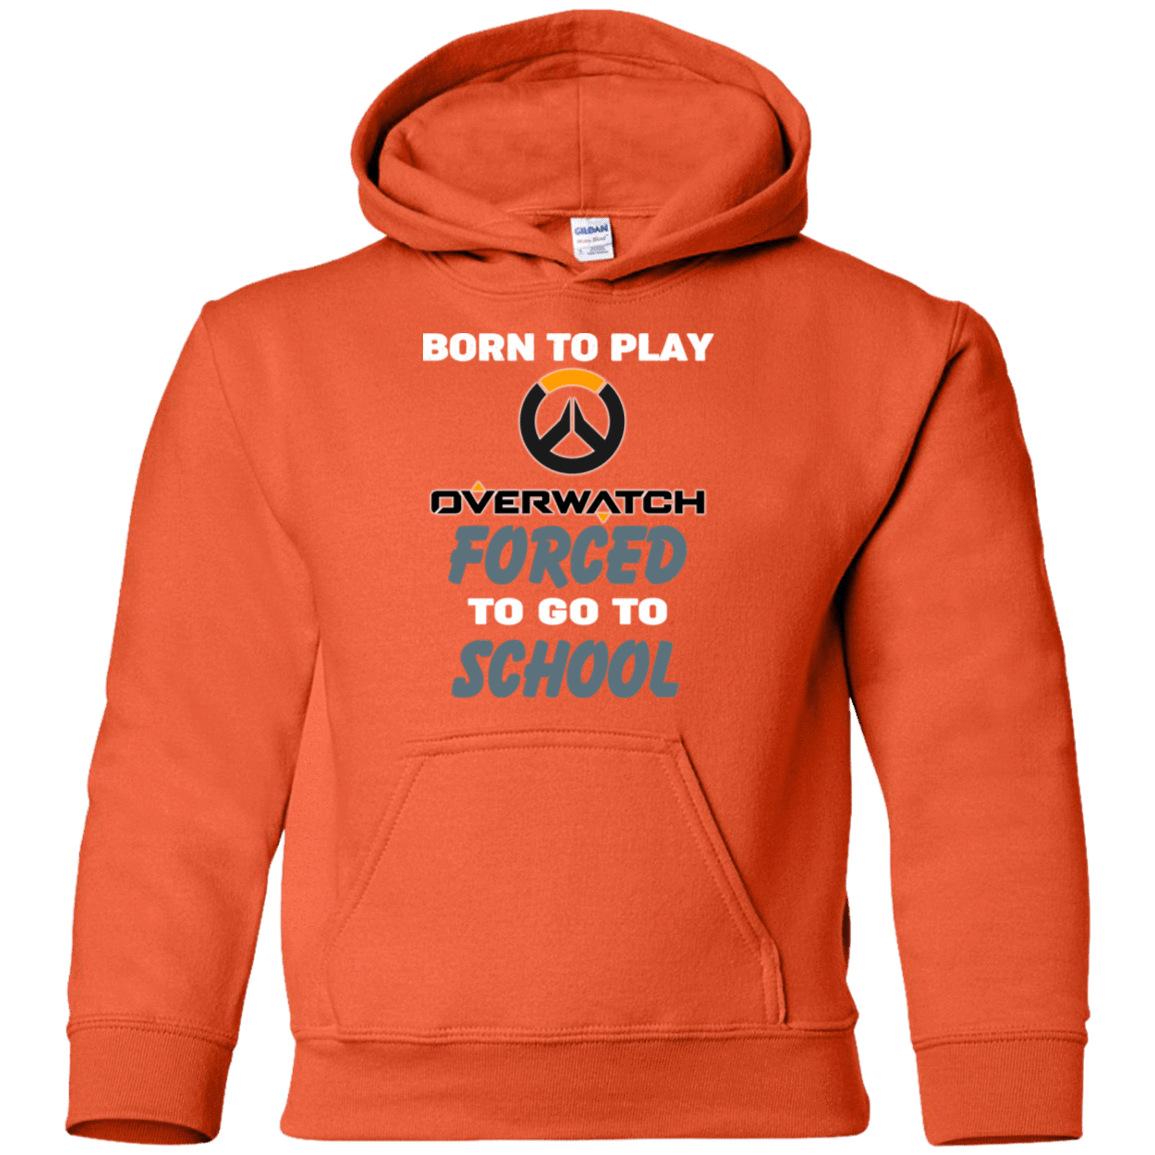 Born To Play Overwatch Forced To Go To School 59-5072-74209661-24893 - Tee Ript